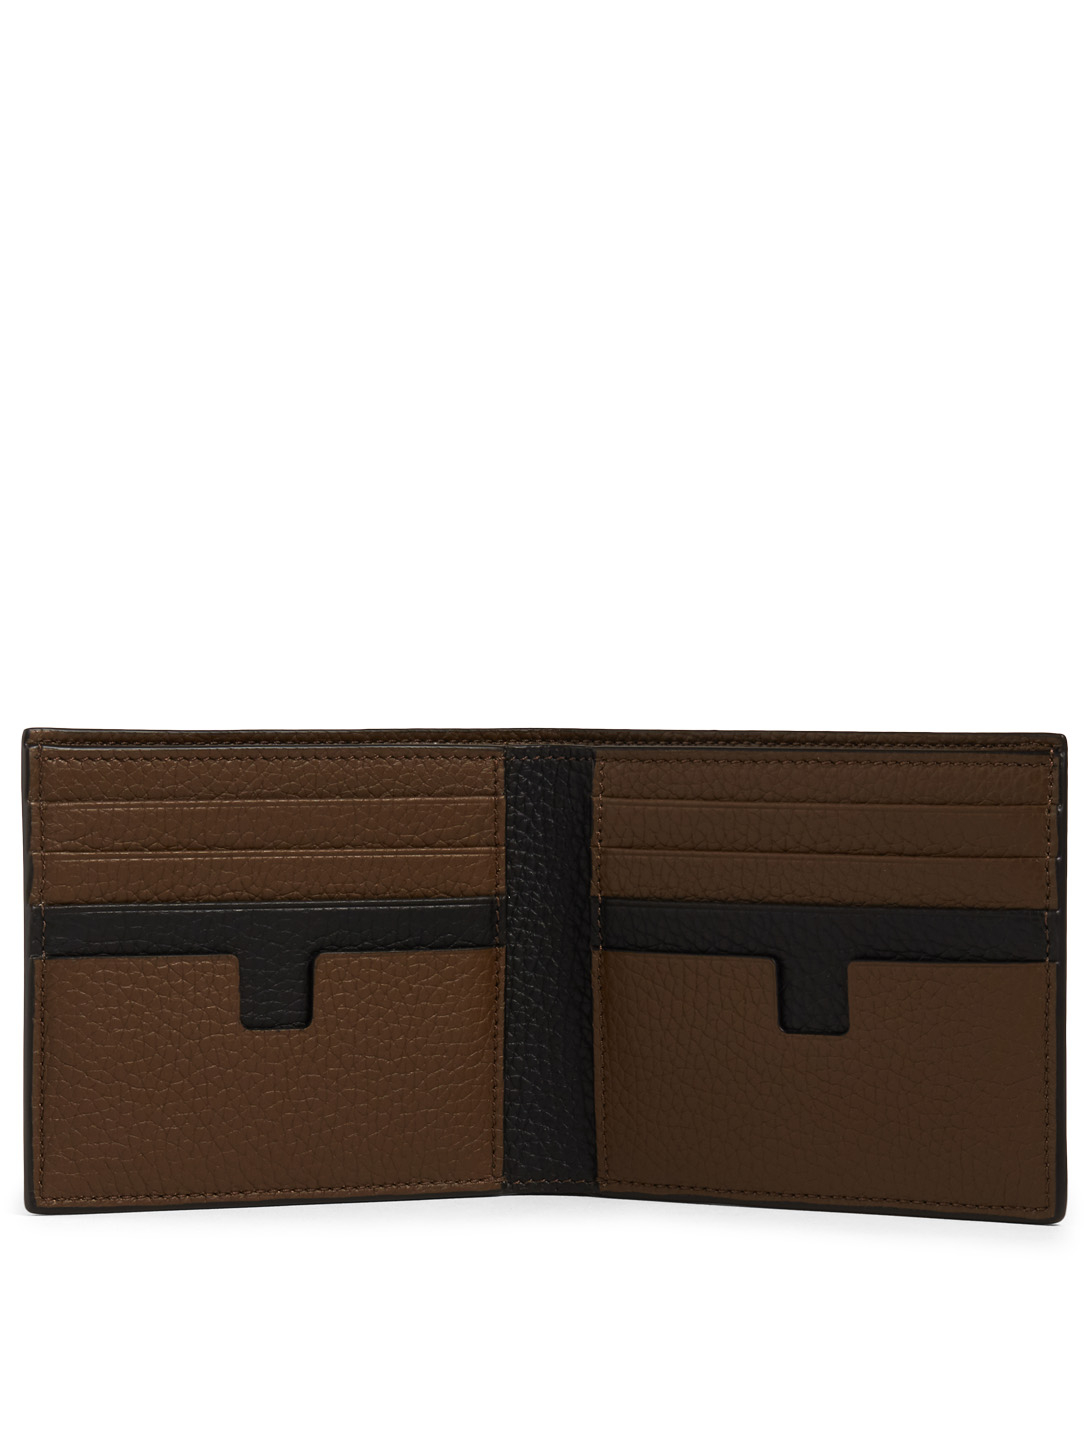 TOM FORD Two-Tone Leather Bifold Wallet Men's Neutral